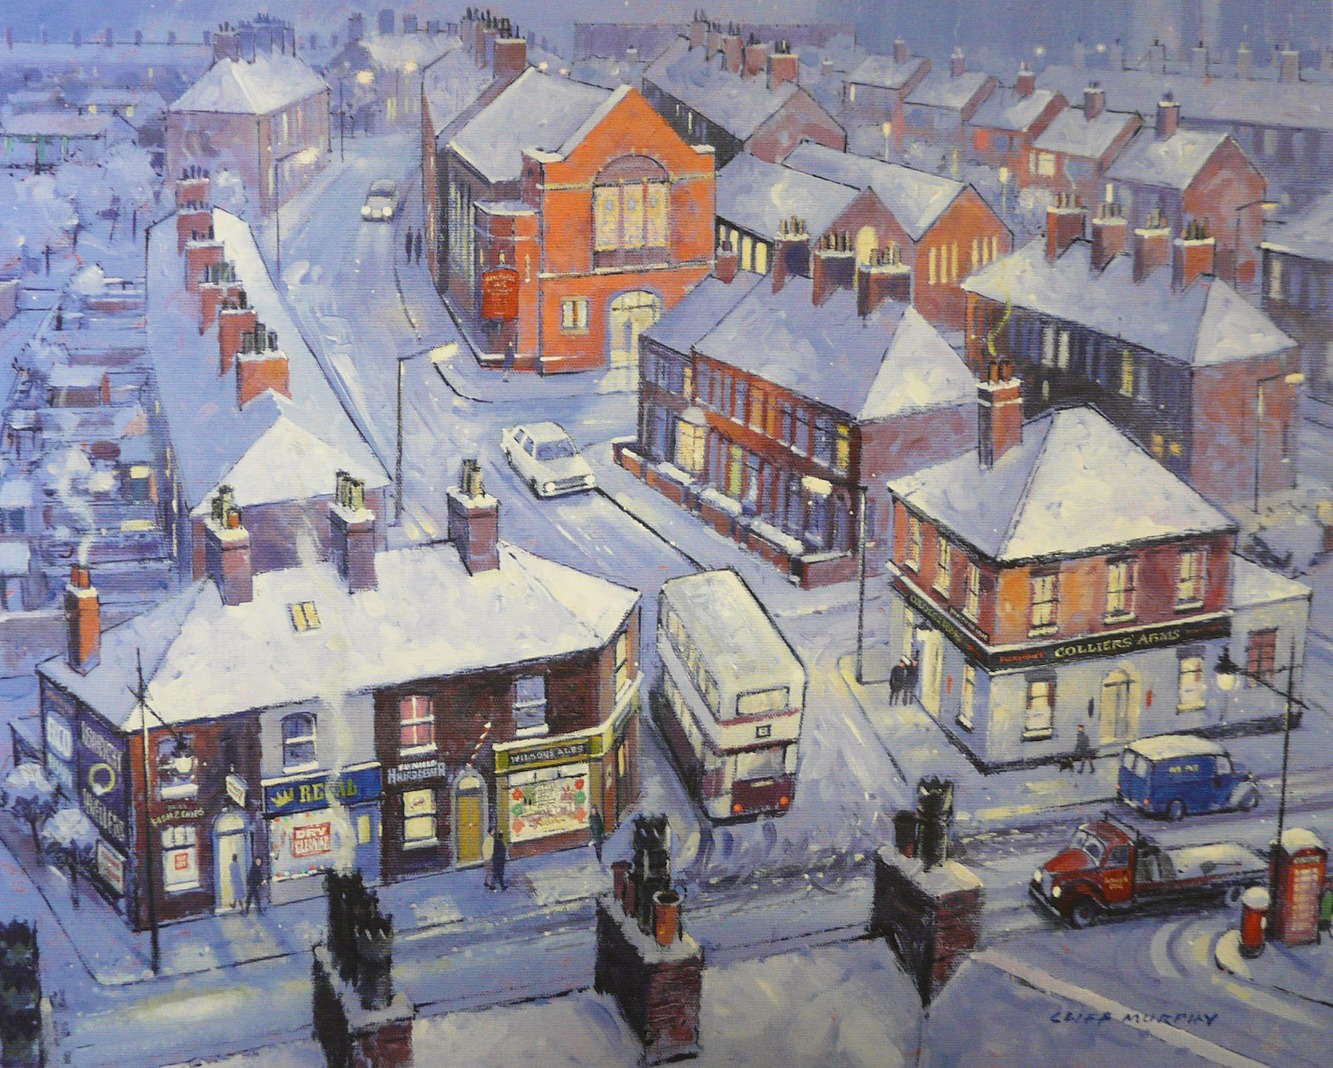 Honeywell Lane (Oldham) by Cliff Murphy, Northern | Nostalgic | Snow | Local